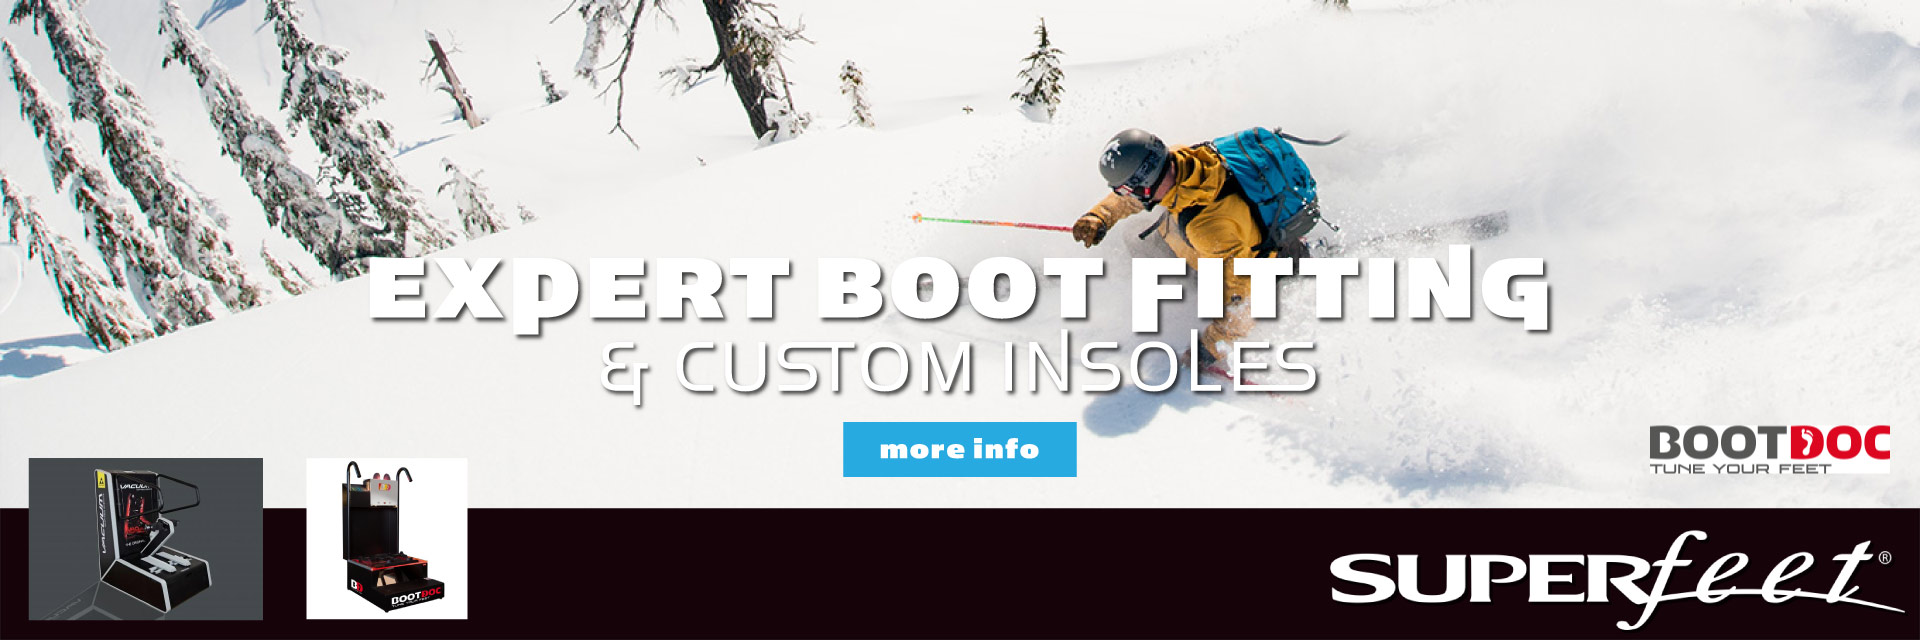 World Cup Ski and Cycle Boot Fitting - Custom Boot Insoles